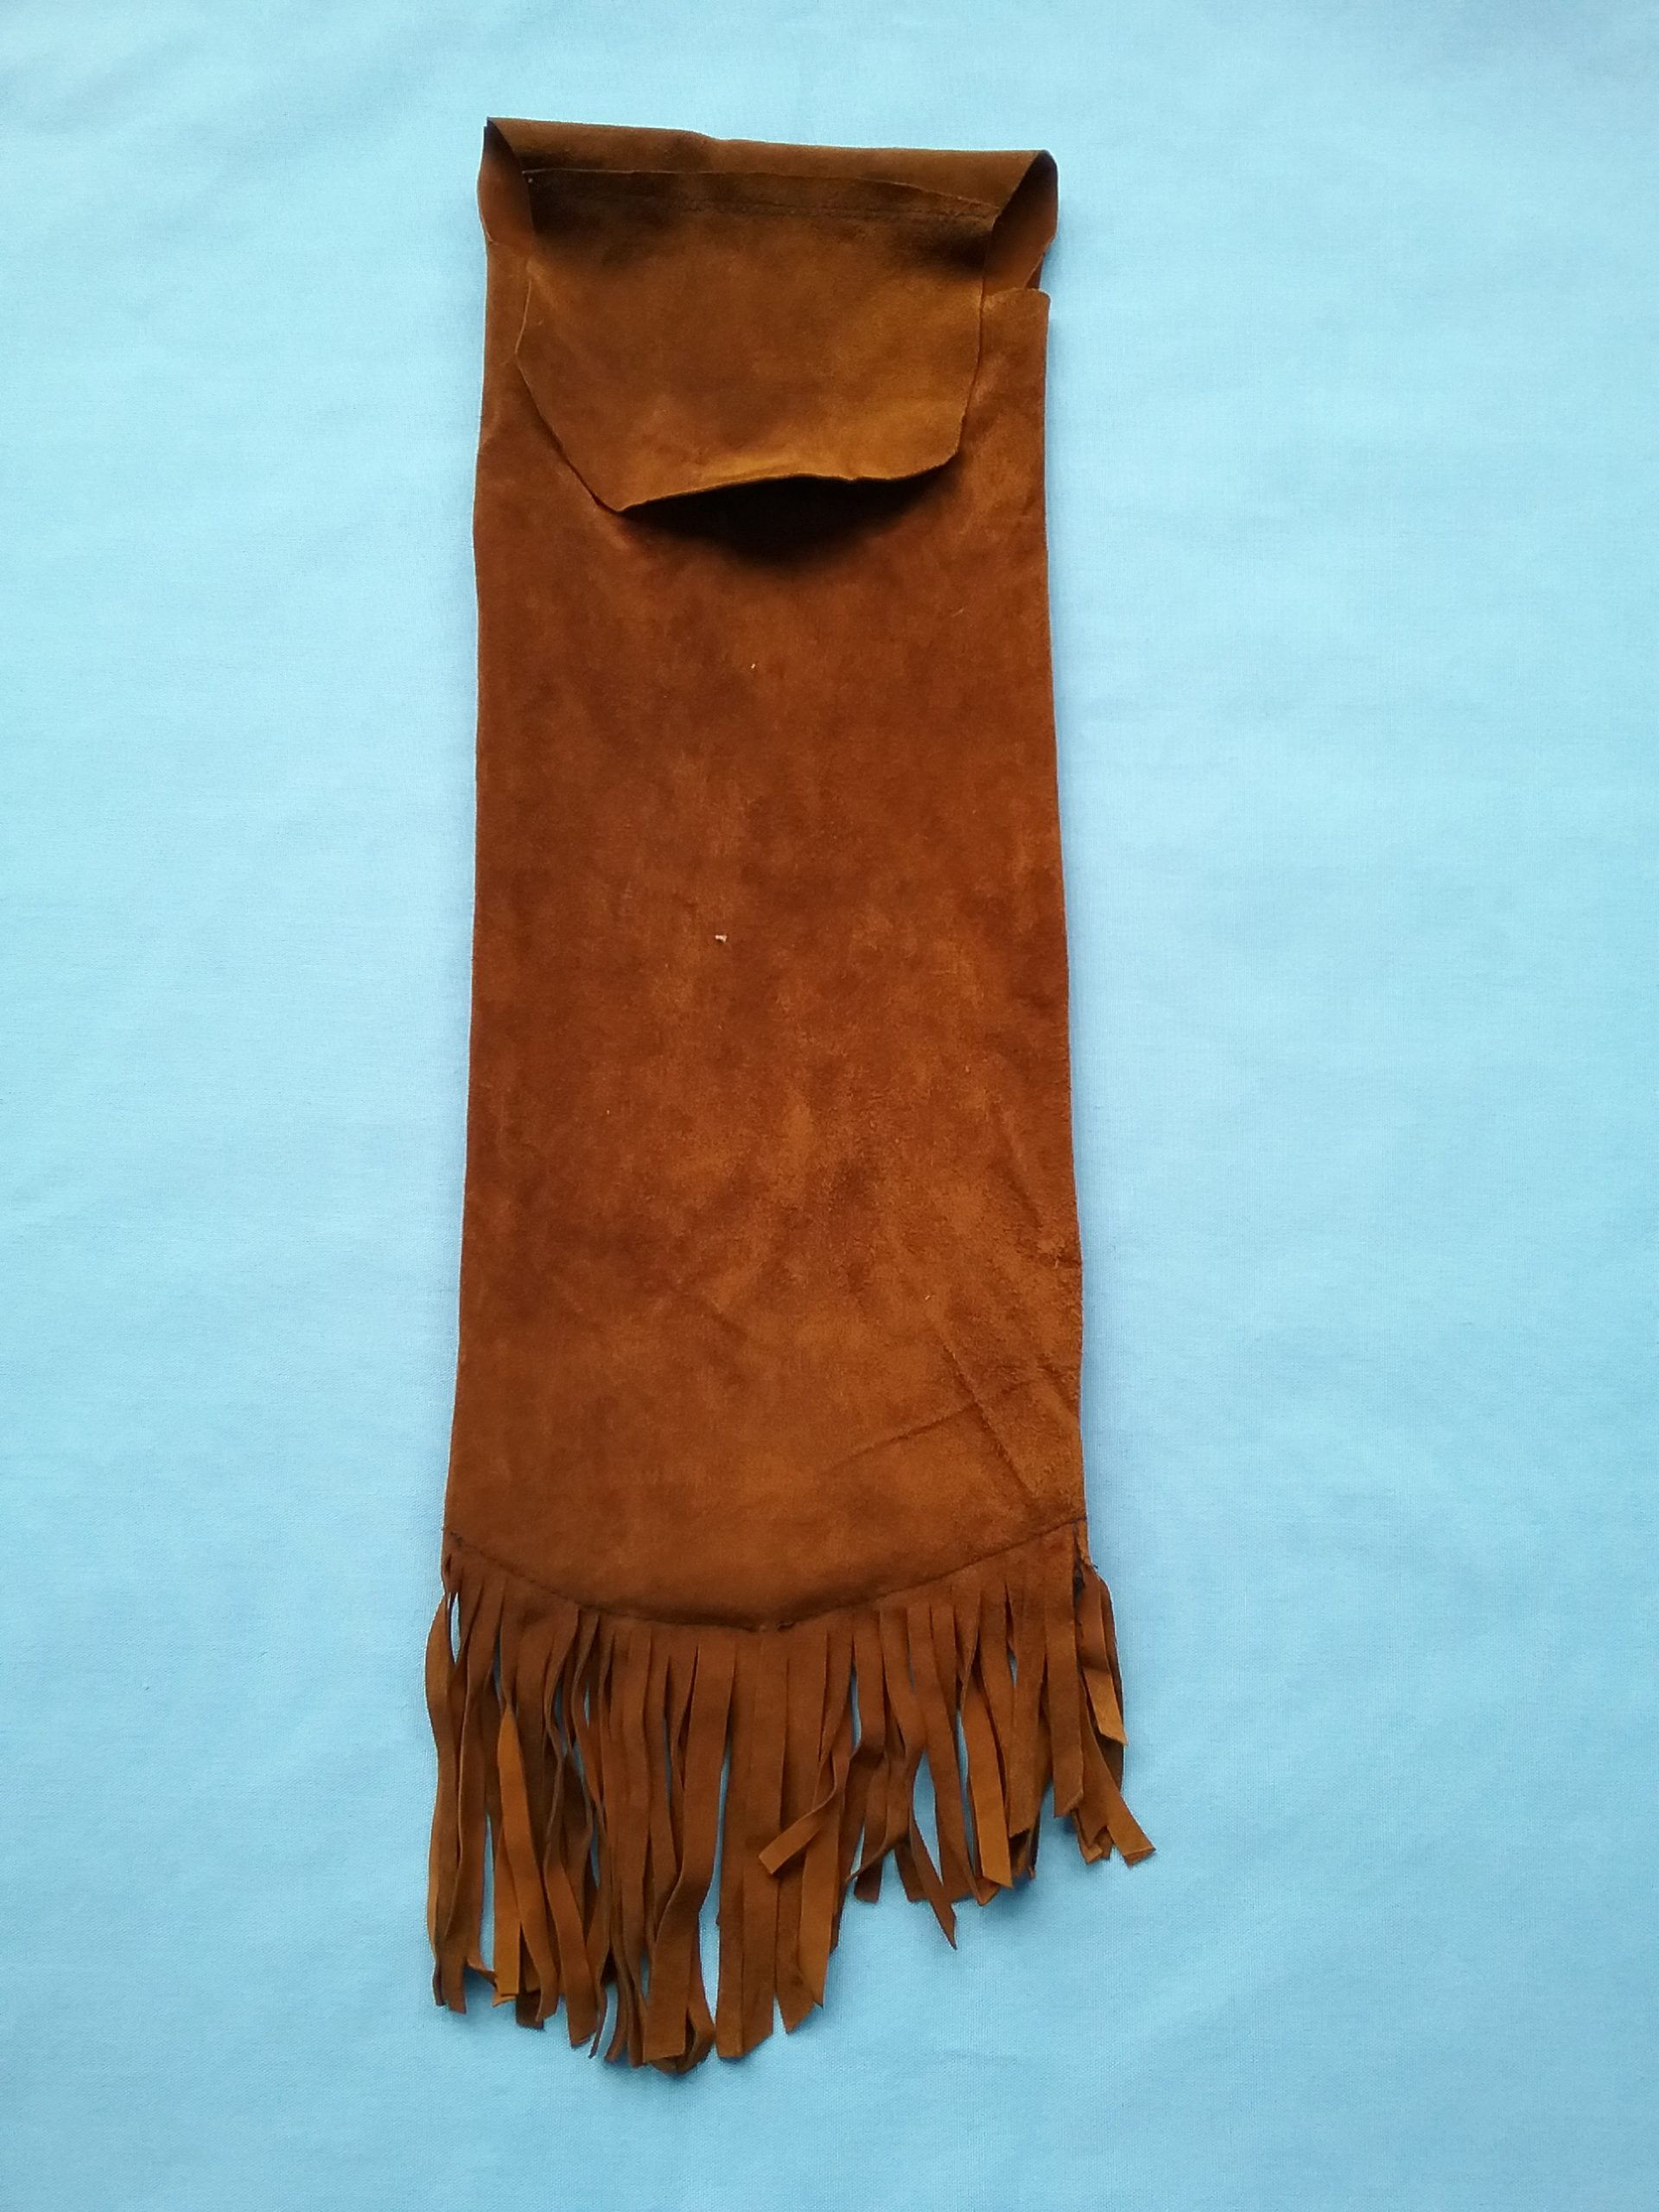 Back of beaded leather bag made by Sister Carol Schmit, OSF. On loan for the BEAD Exhibit from Sr. Carol Schmit.